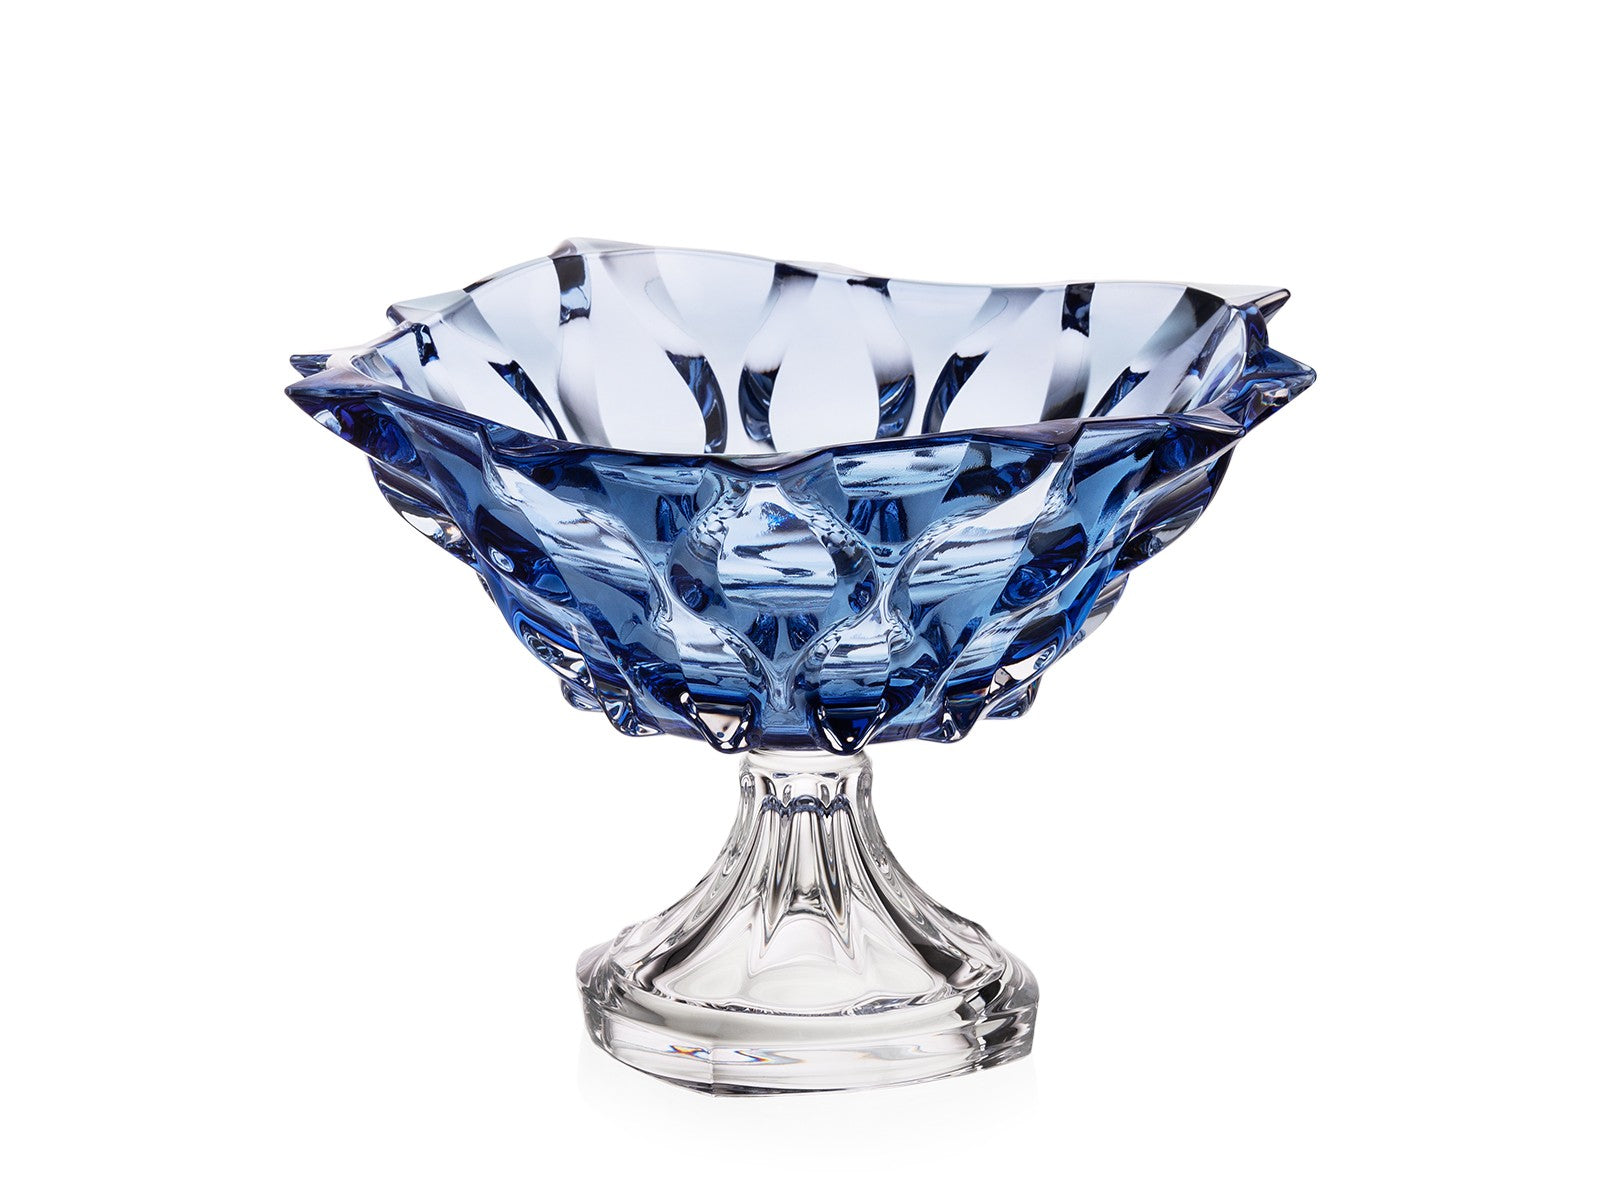 Crystal glass wedding gift set - blue